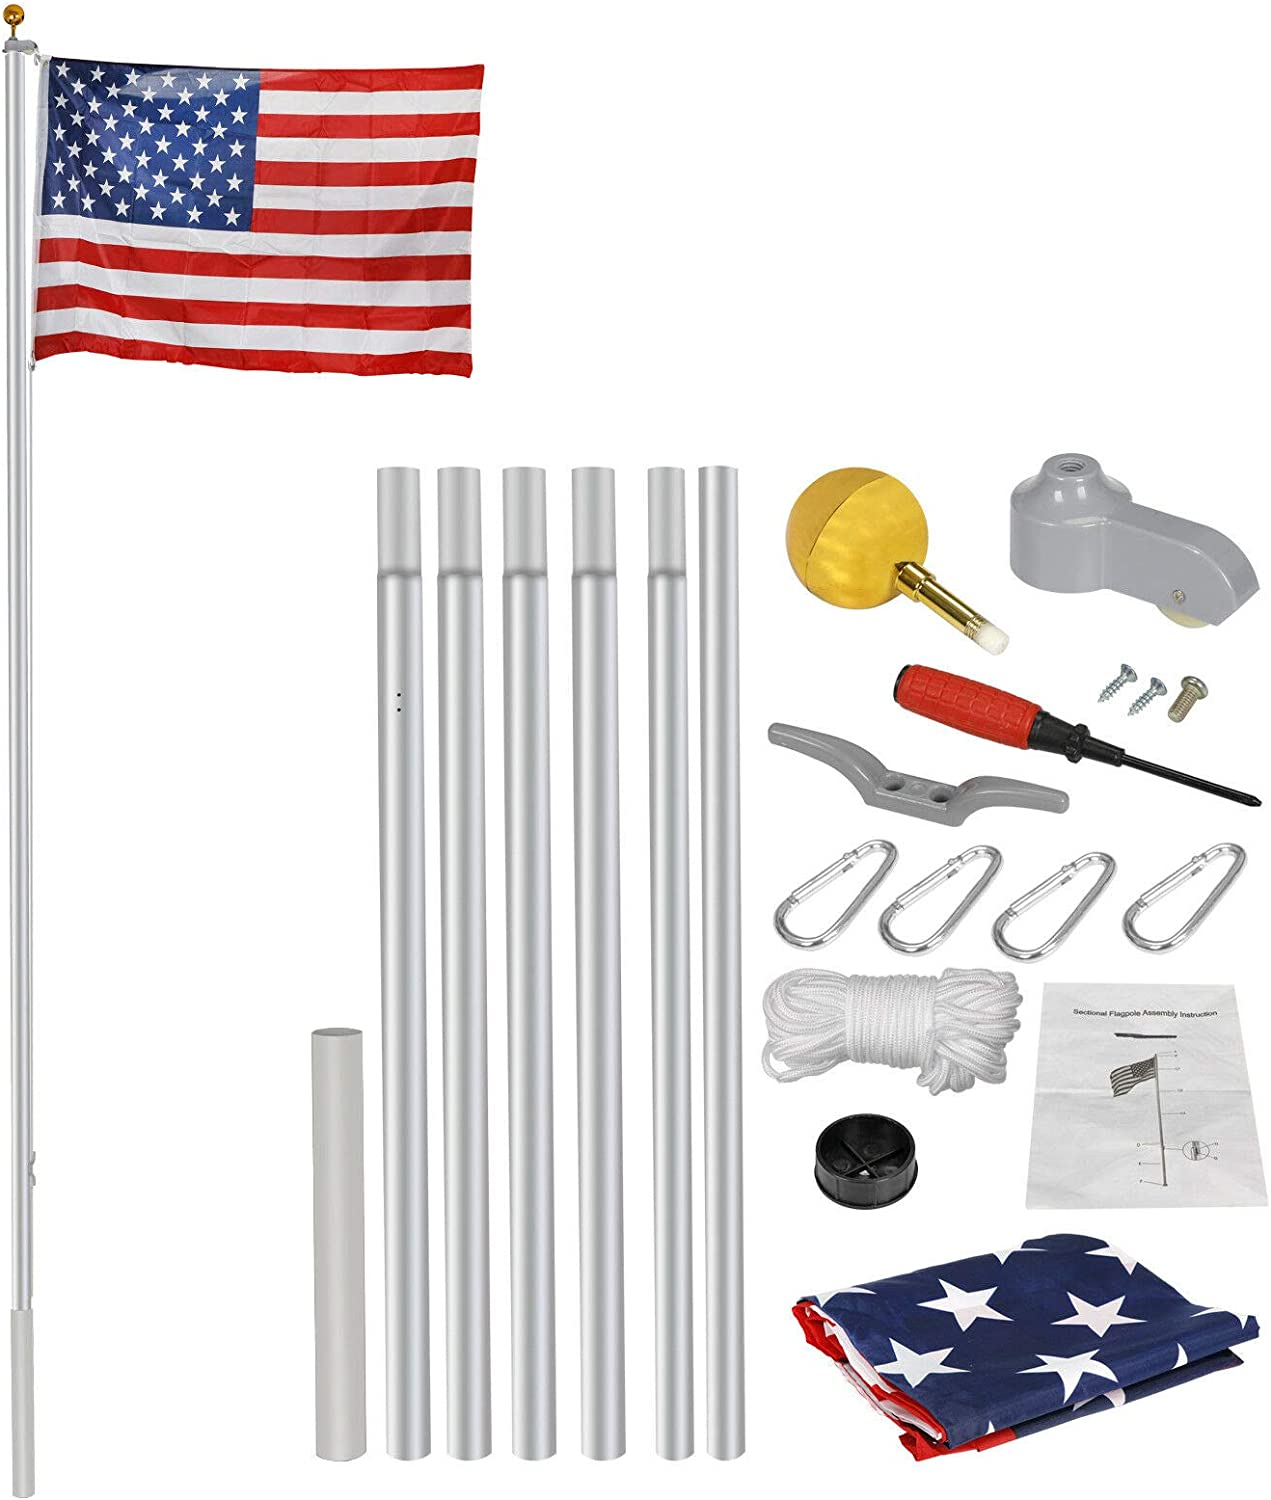 20ft Flagpole Aluminum Kit Sectional Halyard 1x お買い得品 A 安全 Pole Outdoor